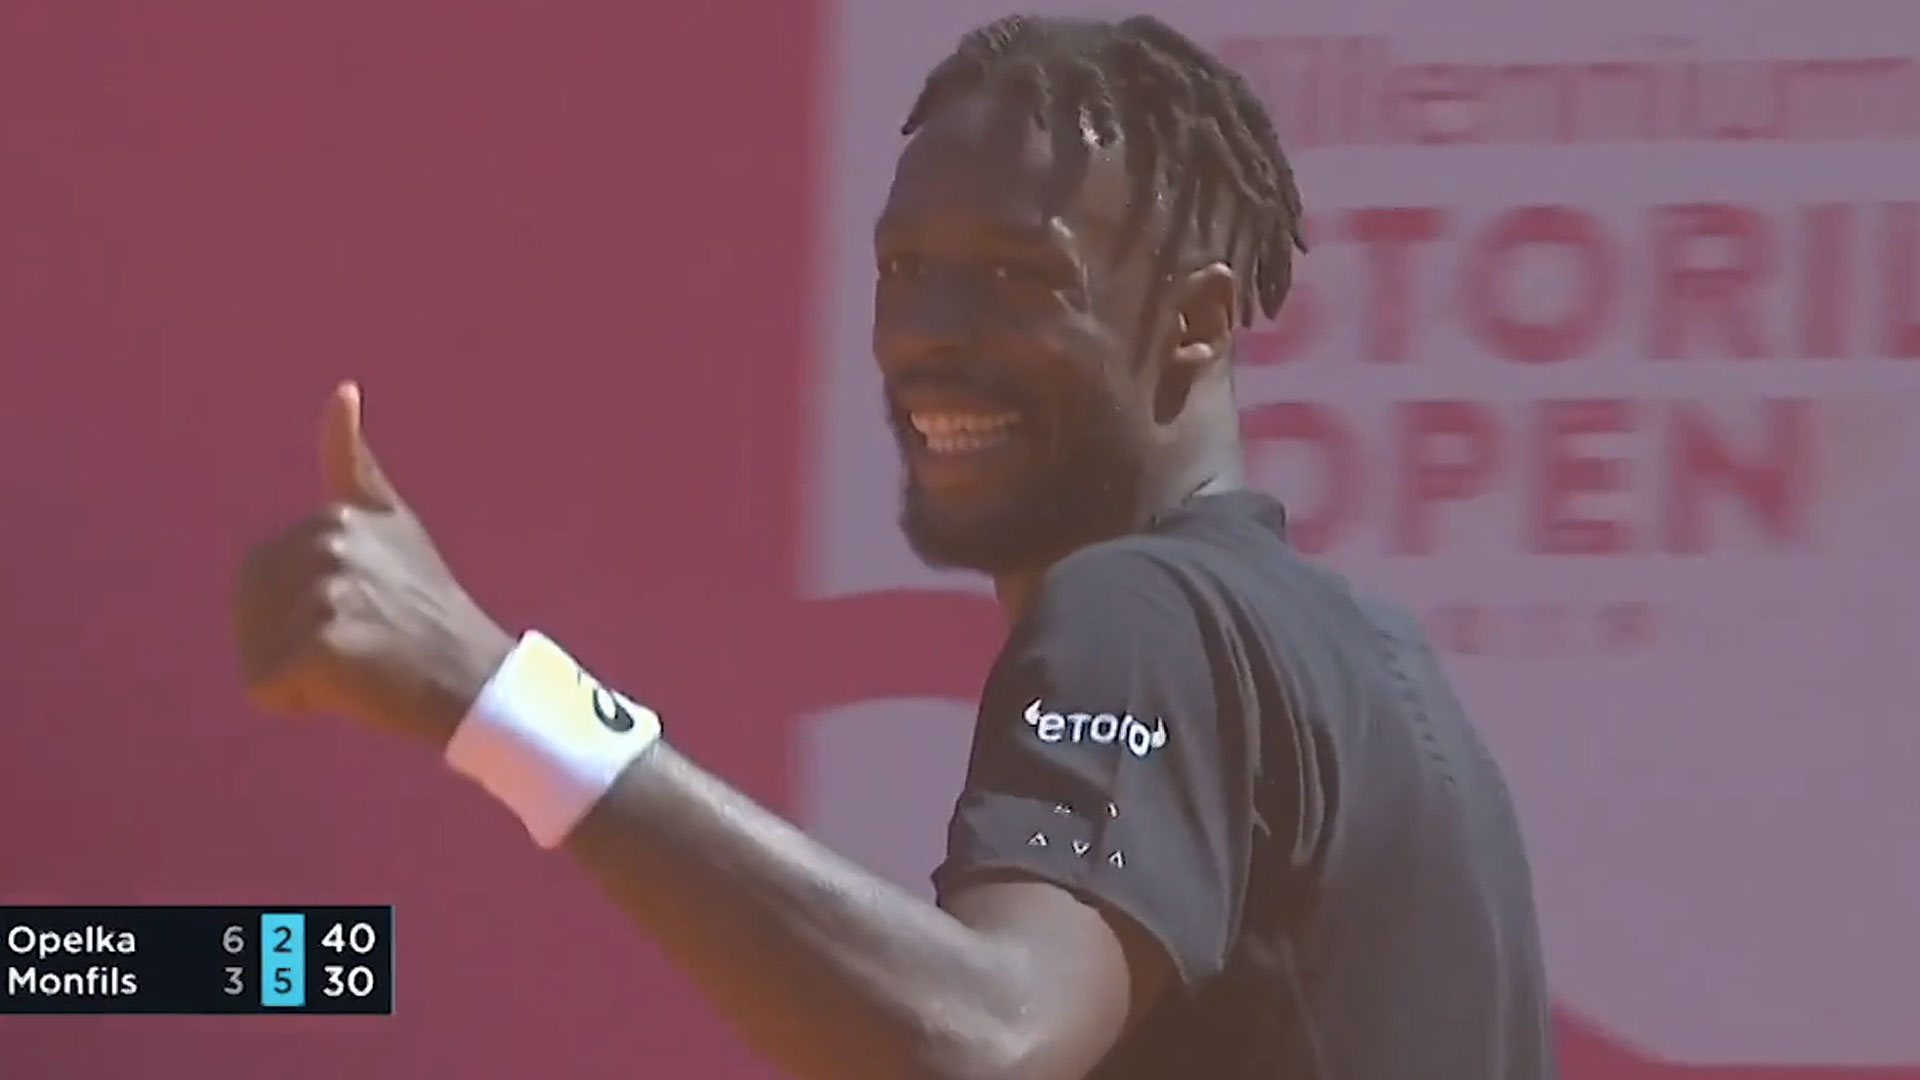 Gael Monfils reacts to Reilly Opelka's bizarre ace at the Millennium Estoril Open on Wednesday.